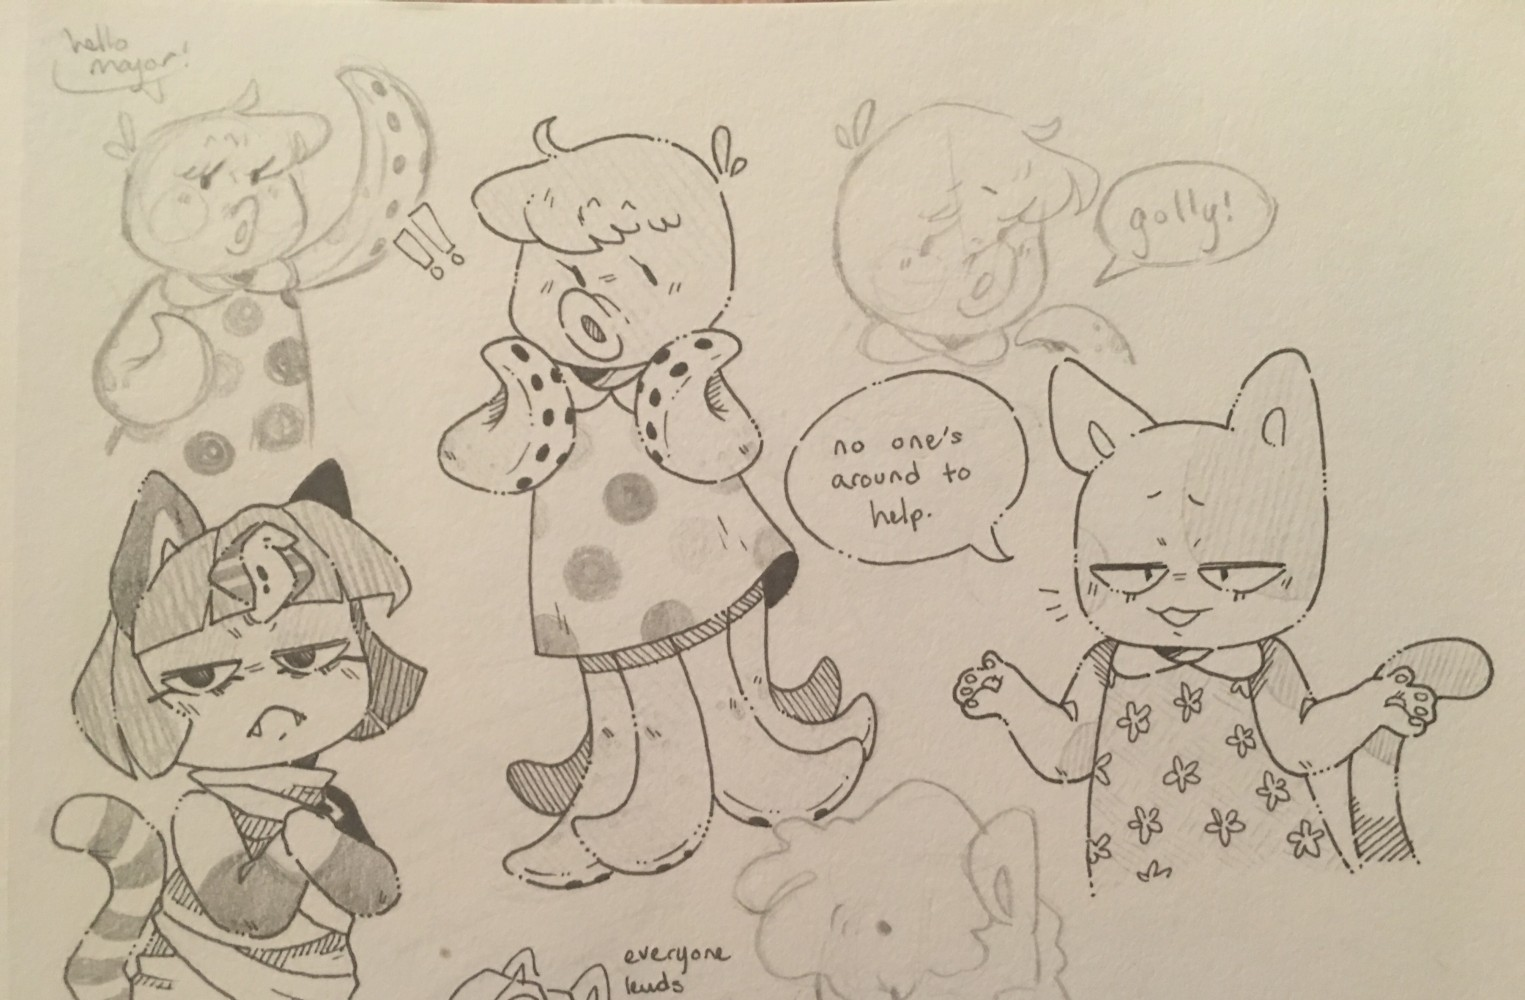 main-image-some animal crossing villagers  uploaded by moist-macaroni